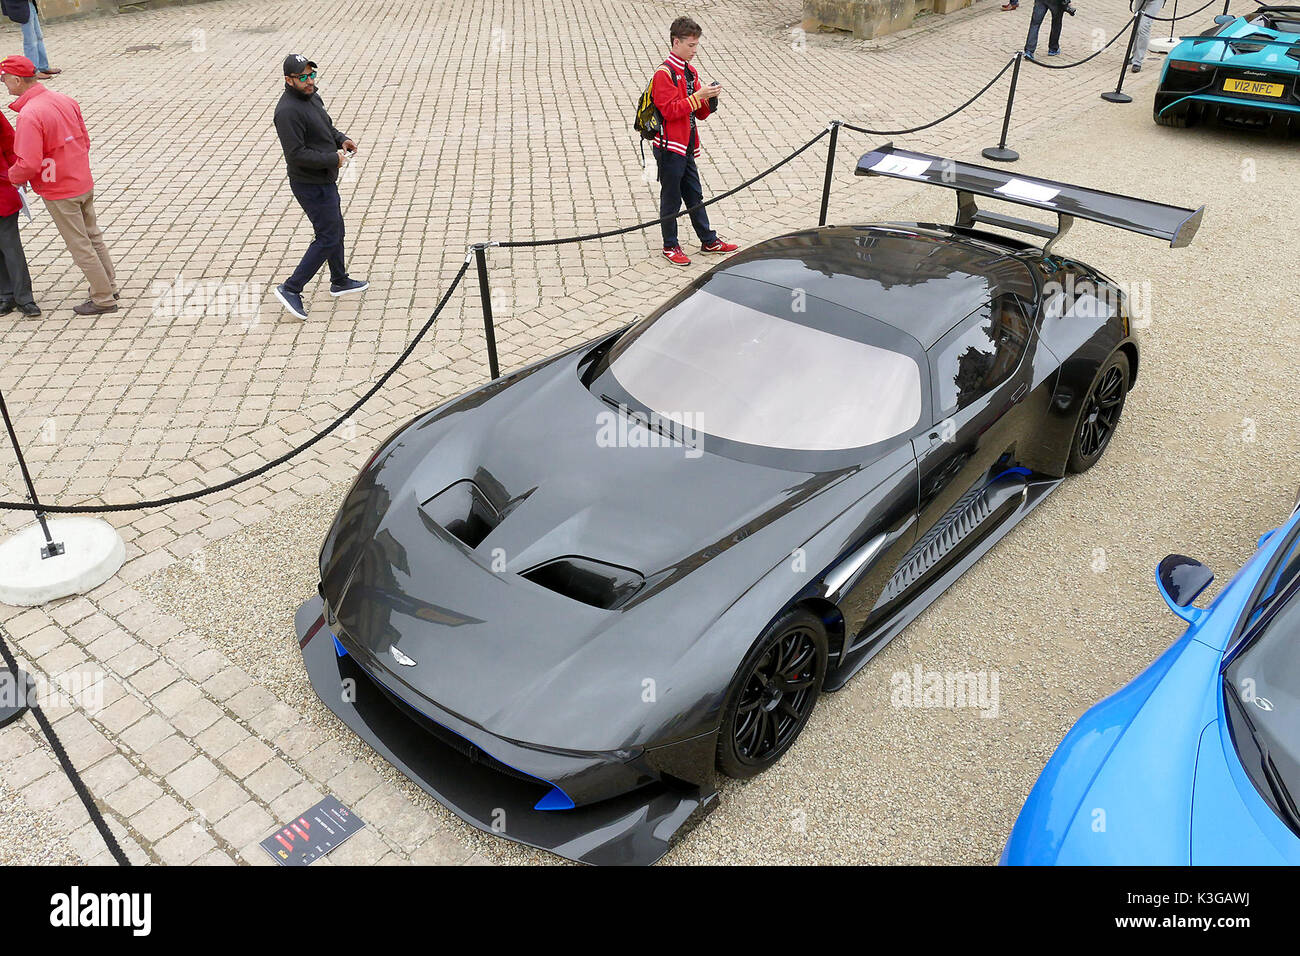 Blenheim Palace, Woodstock, Oxfordshire, UK. 03rd Sep, 2017. A £2m Aston Martin Vulcan leads the display of supercars on show at Blenheim Palace in Oxfordshire Picture: Ric Mellis 3/9/2017 Blenheim Palace, Woodstock, Oxfordshire Credit: Ric Mellis/Alamy Live News - Stock Image